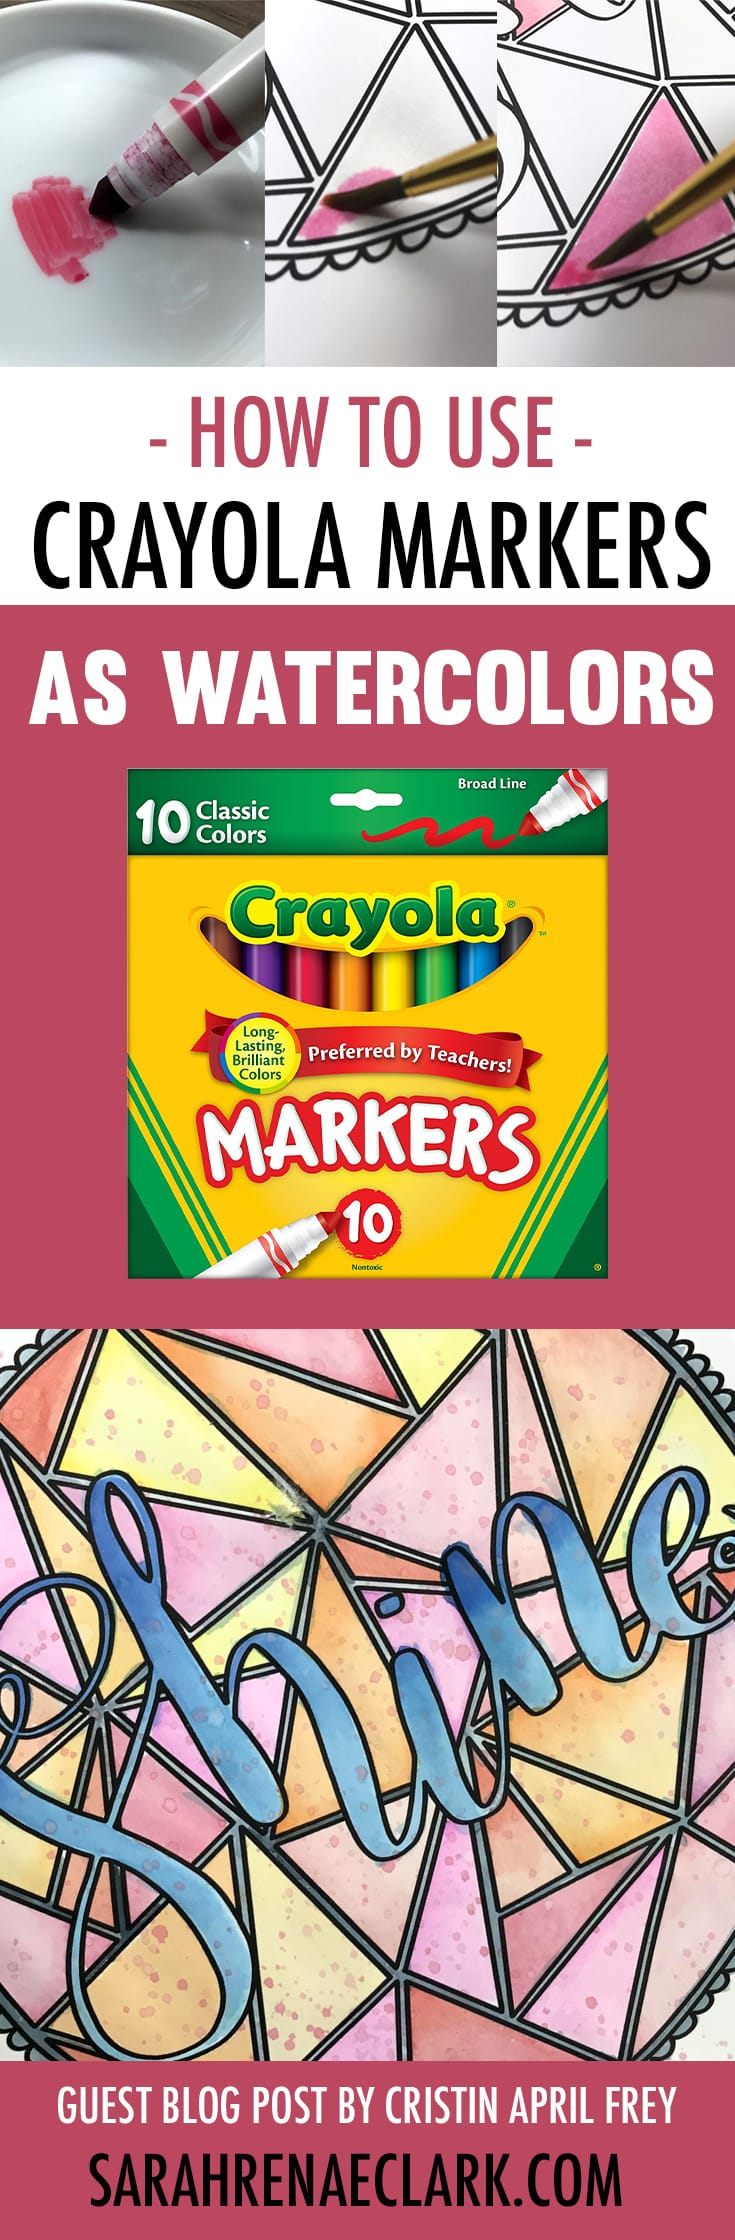 In this coloring tutorial, Cristin will show you how to create beautiful watercolor effects using cheap Crayola markers and water. Check out the step-by-step photos and video tutorial, plus other adult coloring hacks at www.sarahrenaeclark.com | How to use Crayola markers as watercolors